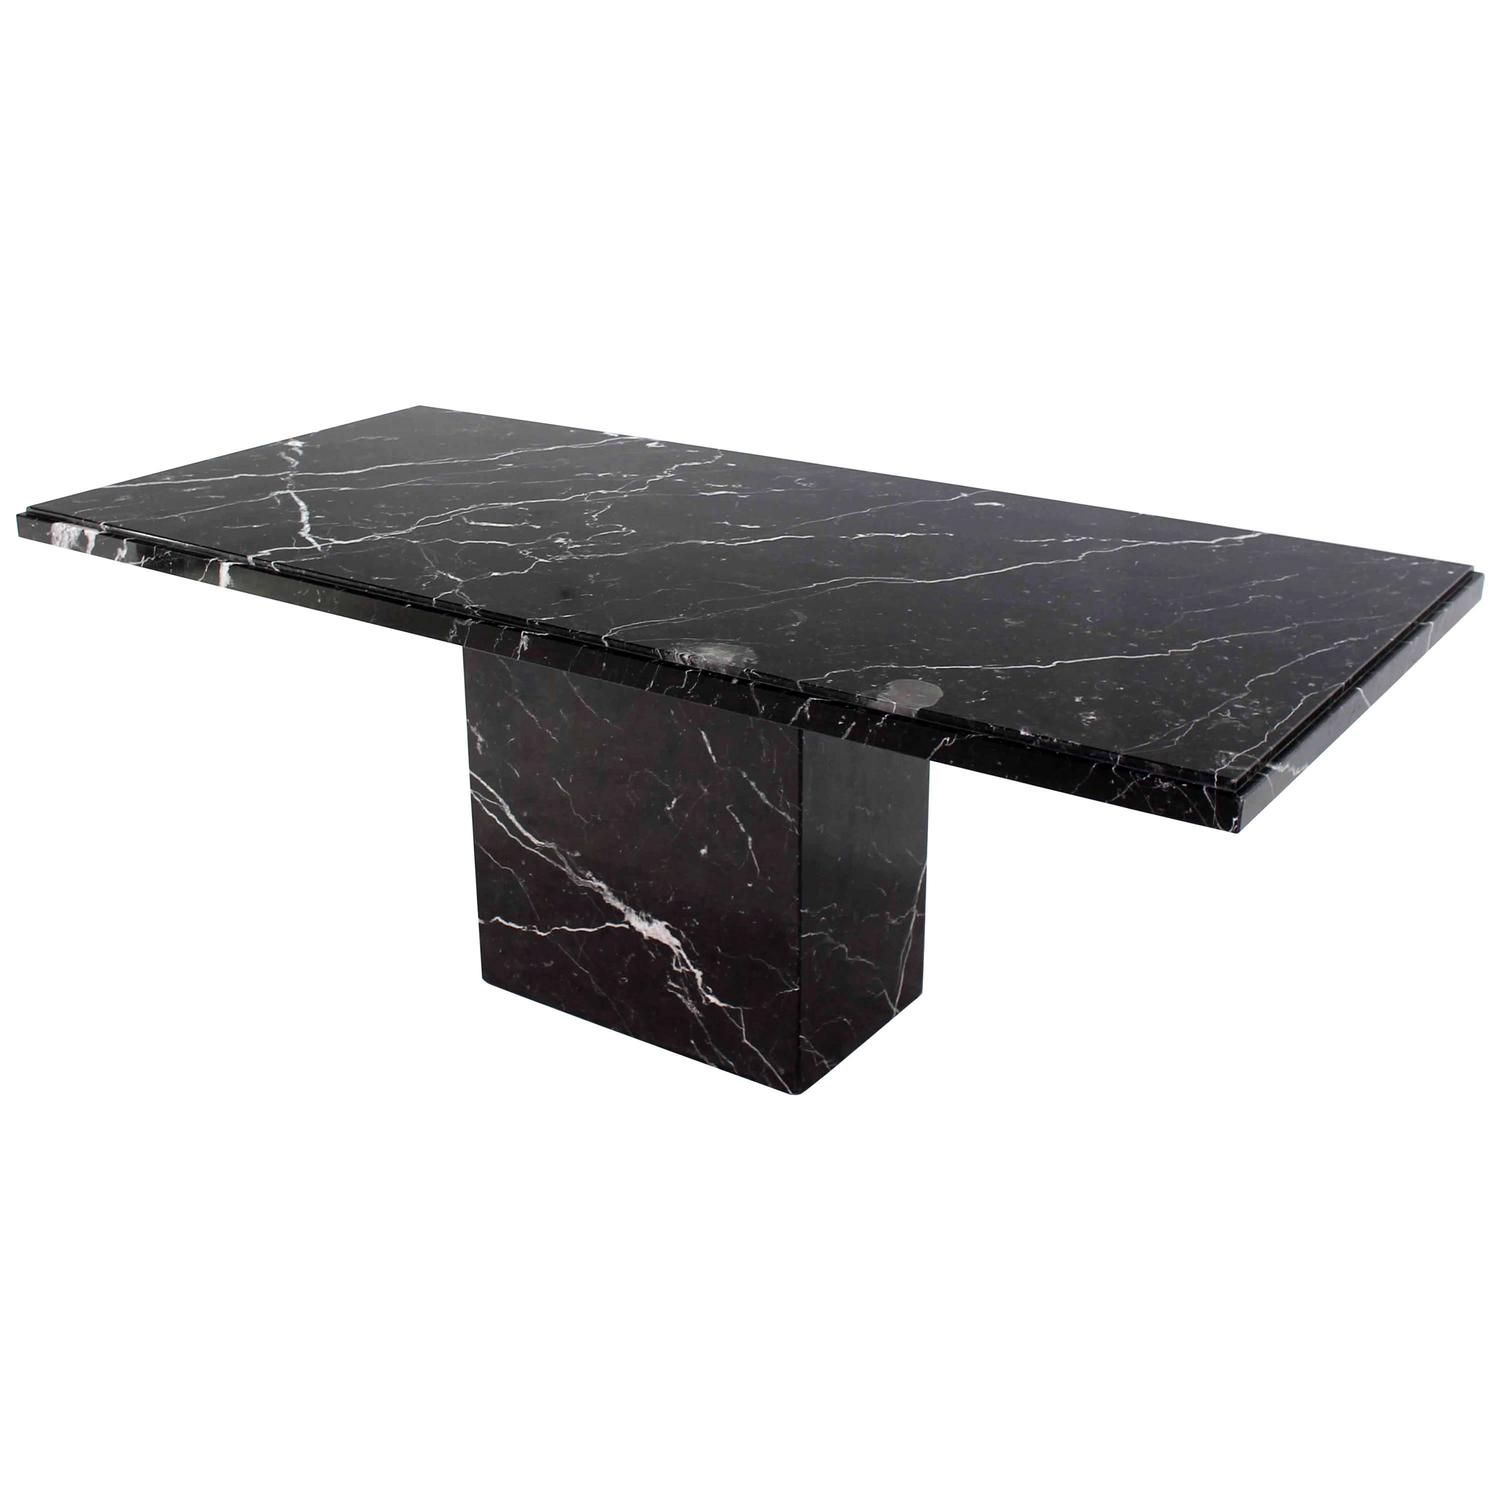 Single Pedestal Black Marble Top Dining Table Dining Table Marble Marble Top Dining Table Dining Table